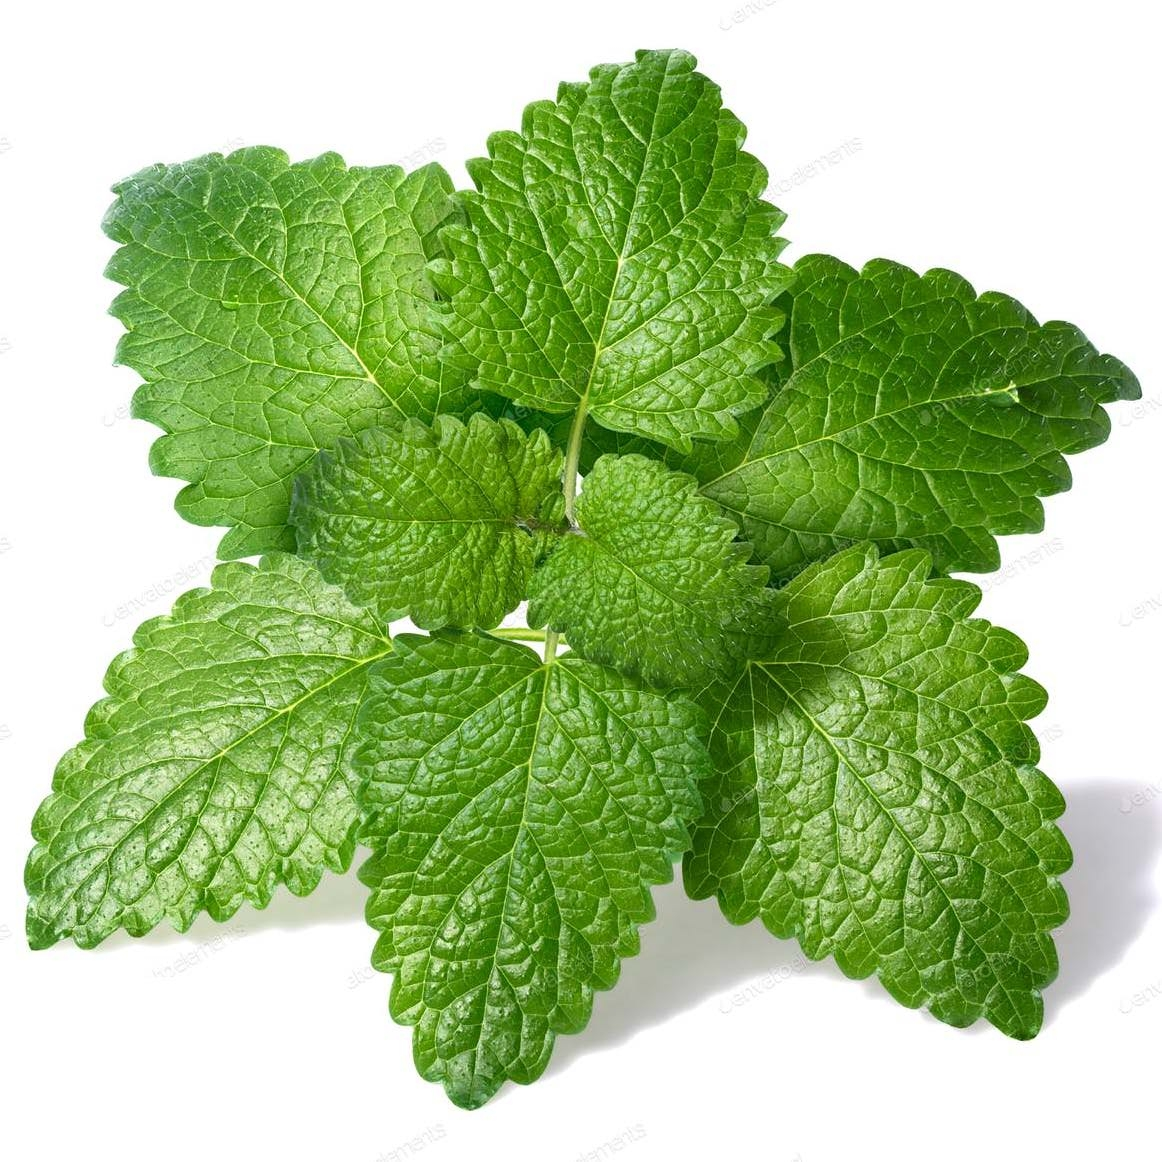 Melissa Essential Oil | Organic Lemon Balm Essential Oil - Nature In Bottle